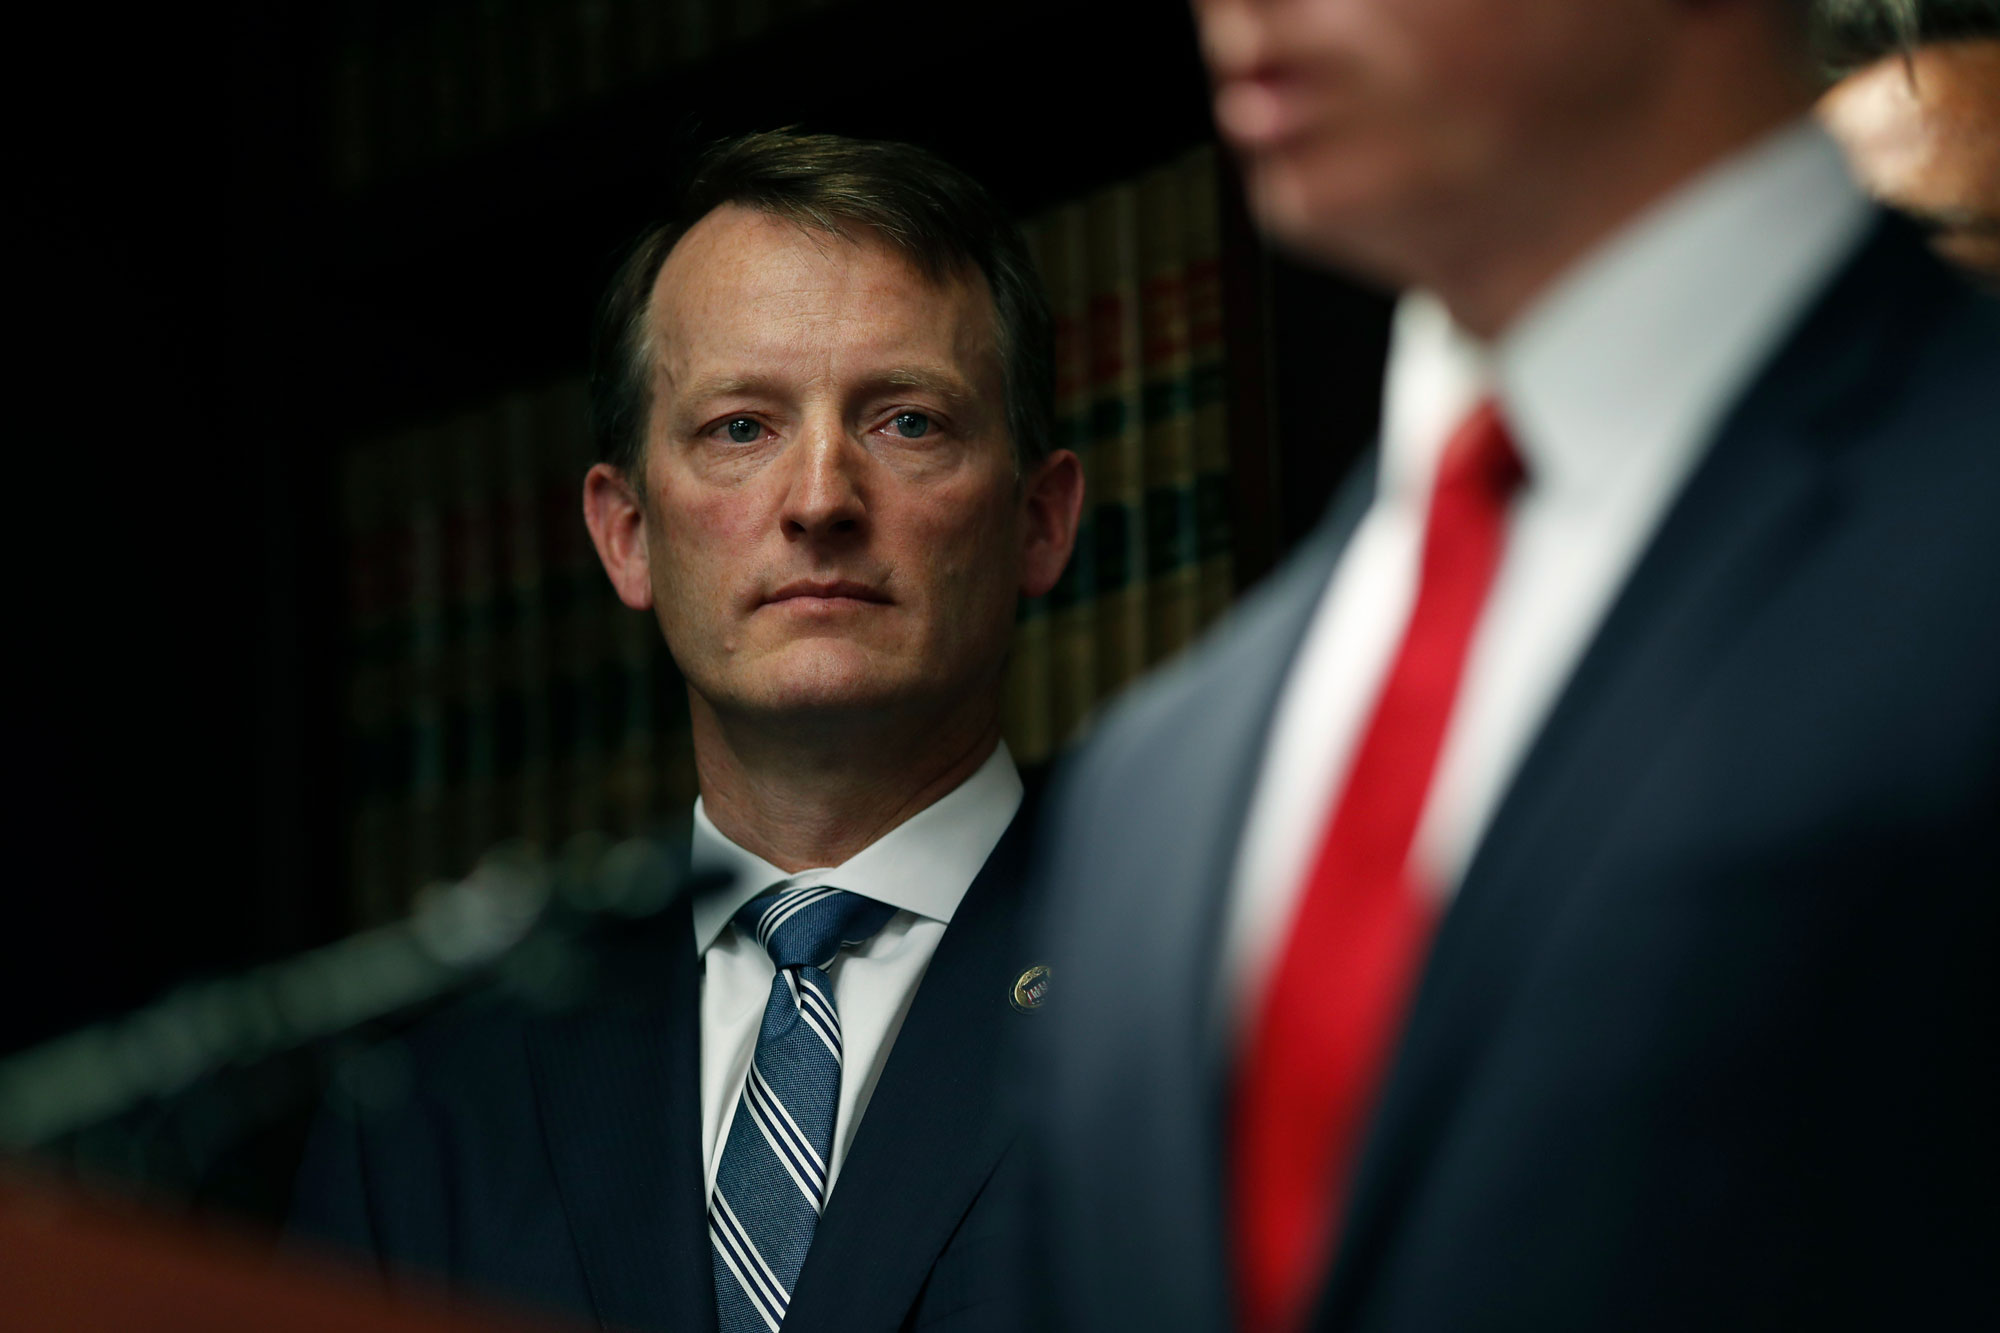 U.S. Attorney Jason Dunn, left, listens as George Brauchler speaks during a news conference to announce the arrest of 42 people this week in one of the largest black market marijuana enforcement actions in the history of Colorado Friday, May 24, 2019, in Denver.